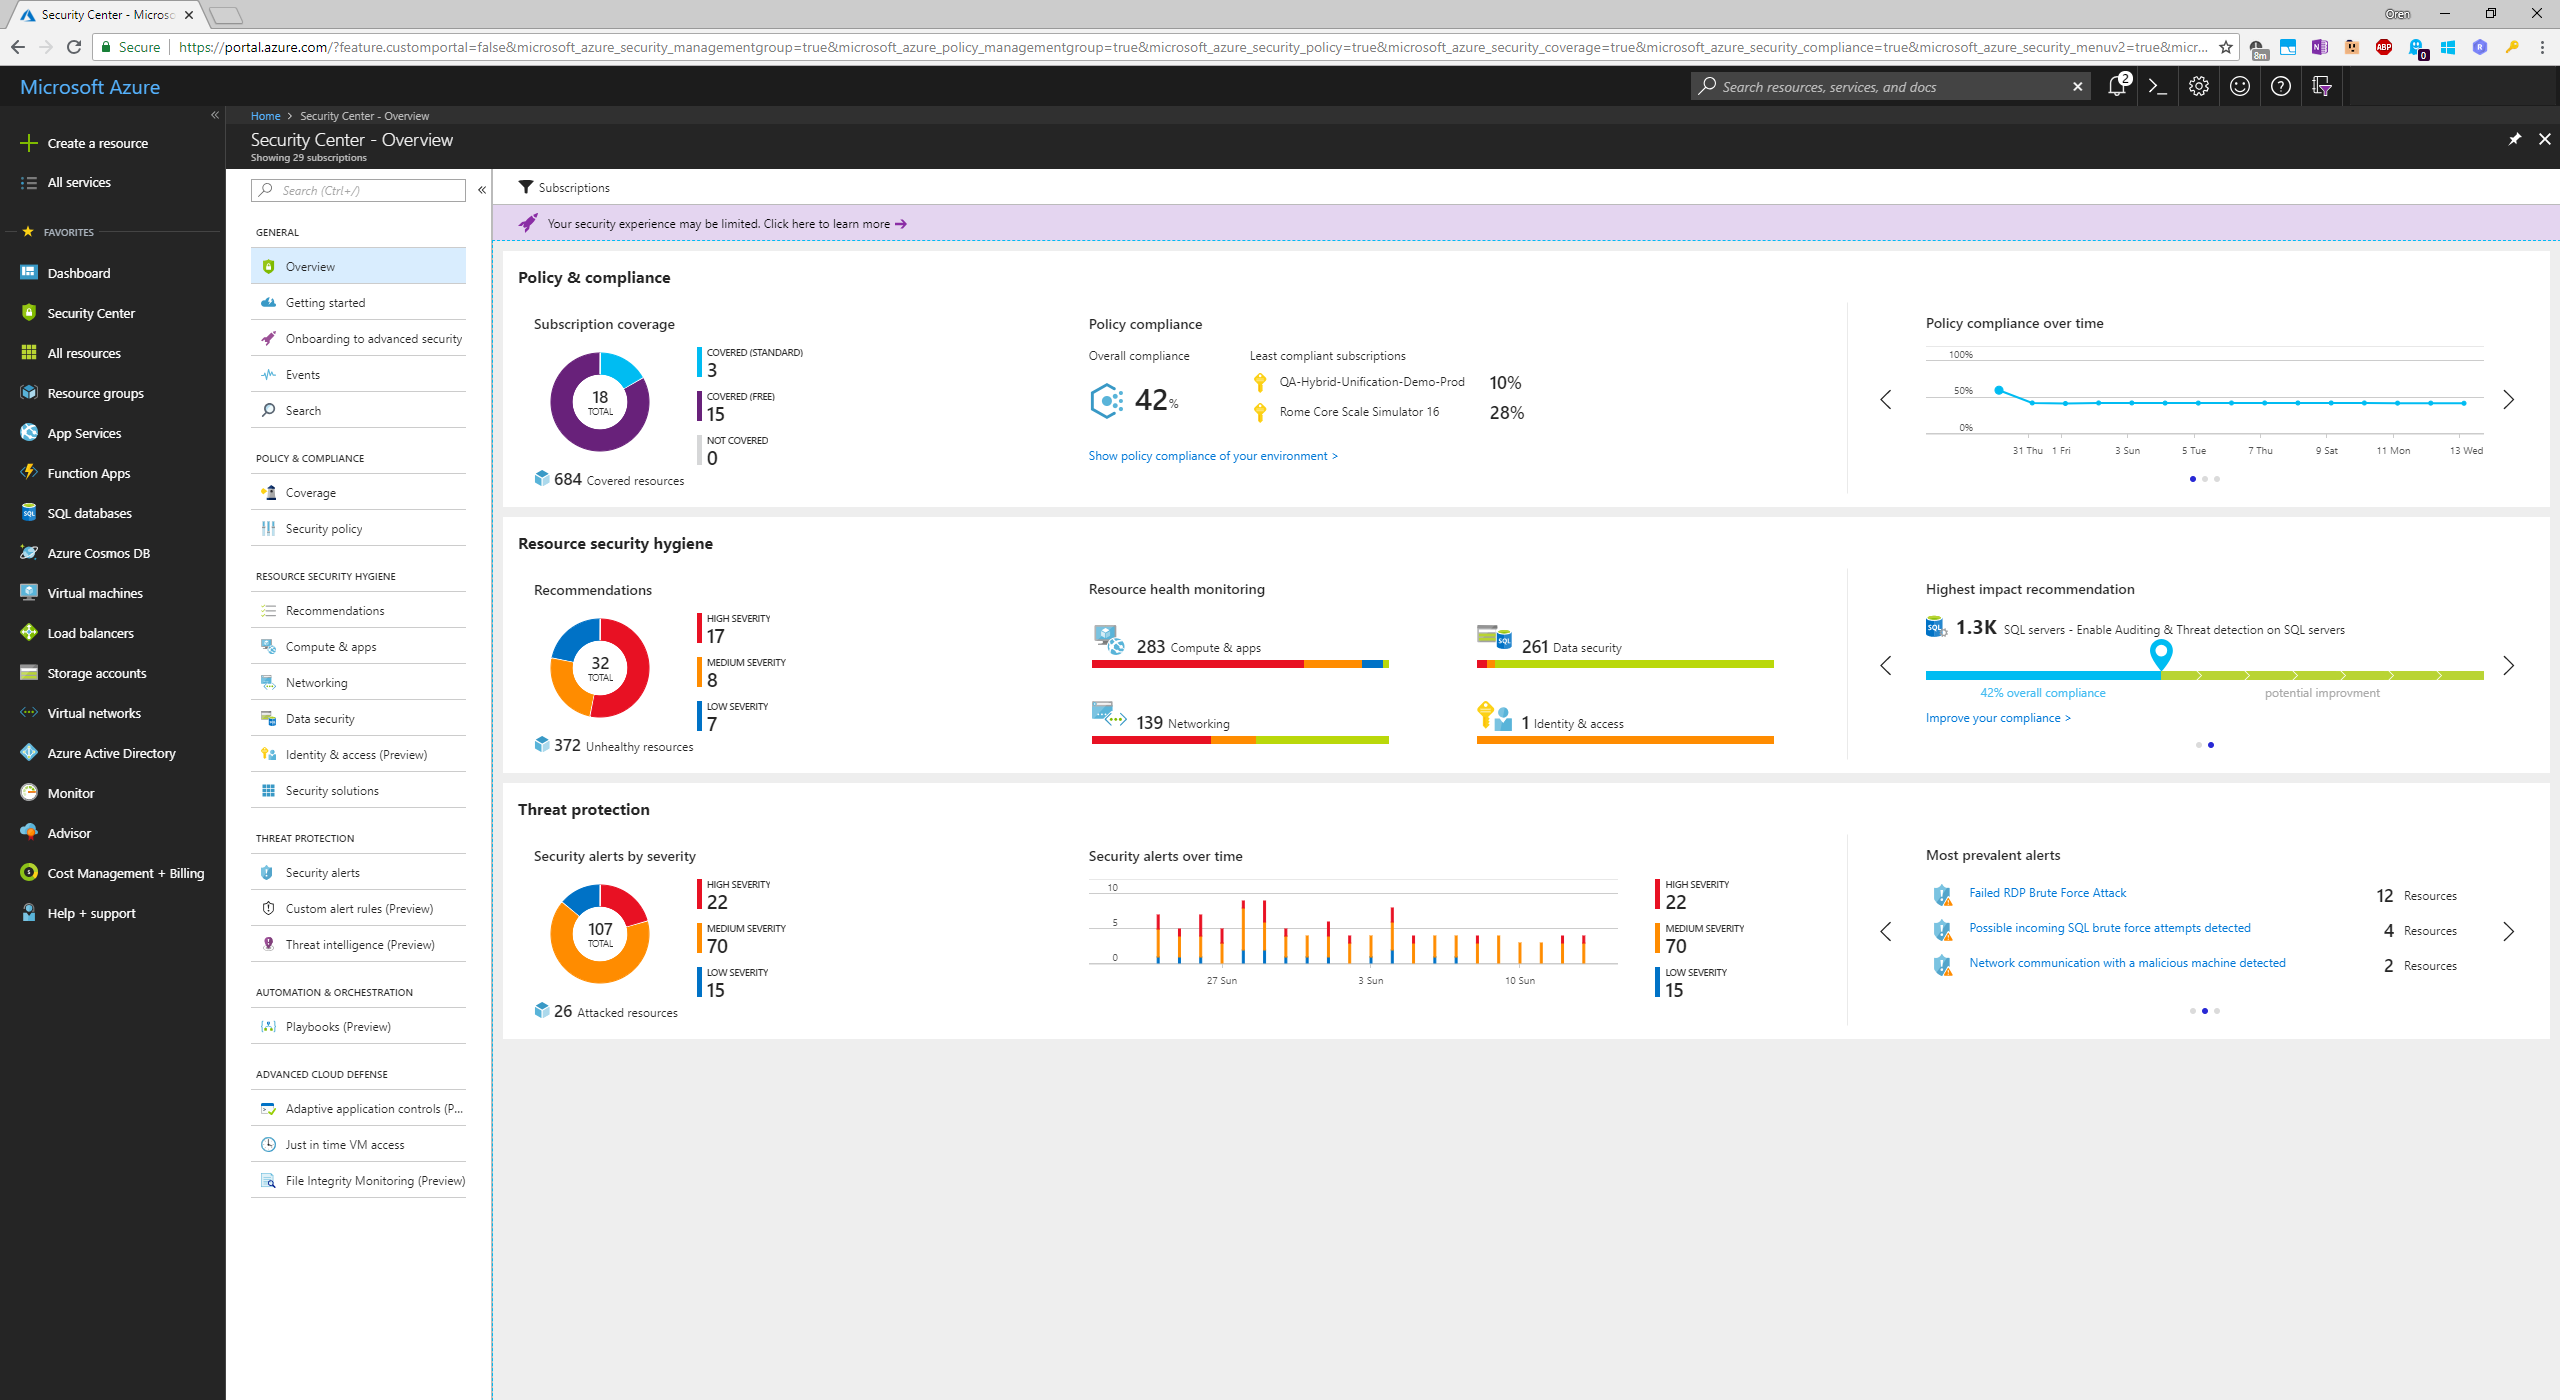 What Is Azure Security Center Microsoft Docs Database Audit Checklist The Built In Dashboard Provides Instant Insights Into Alerts And Vulnerabilities That Require Attention